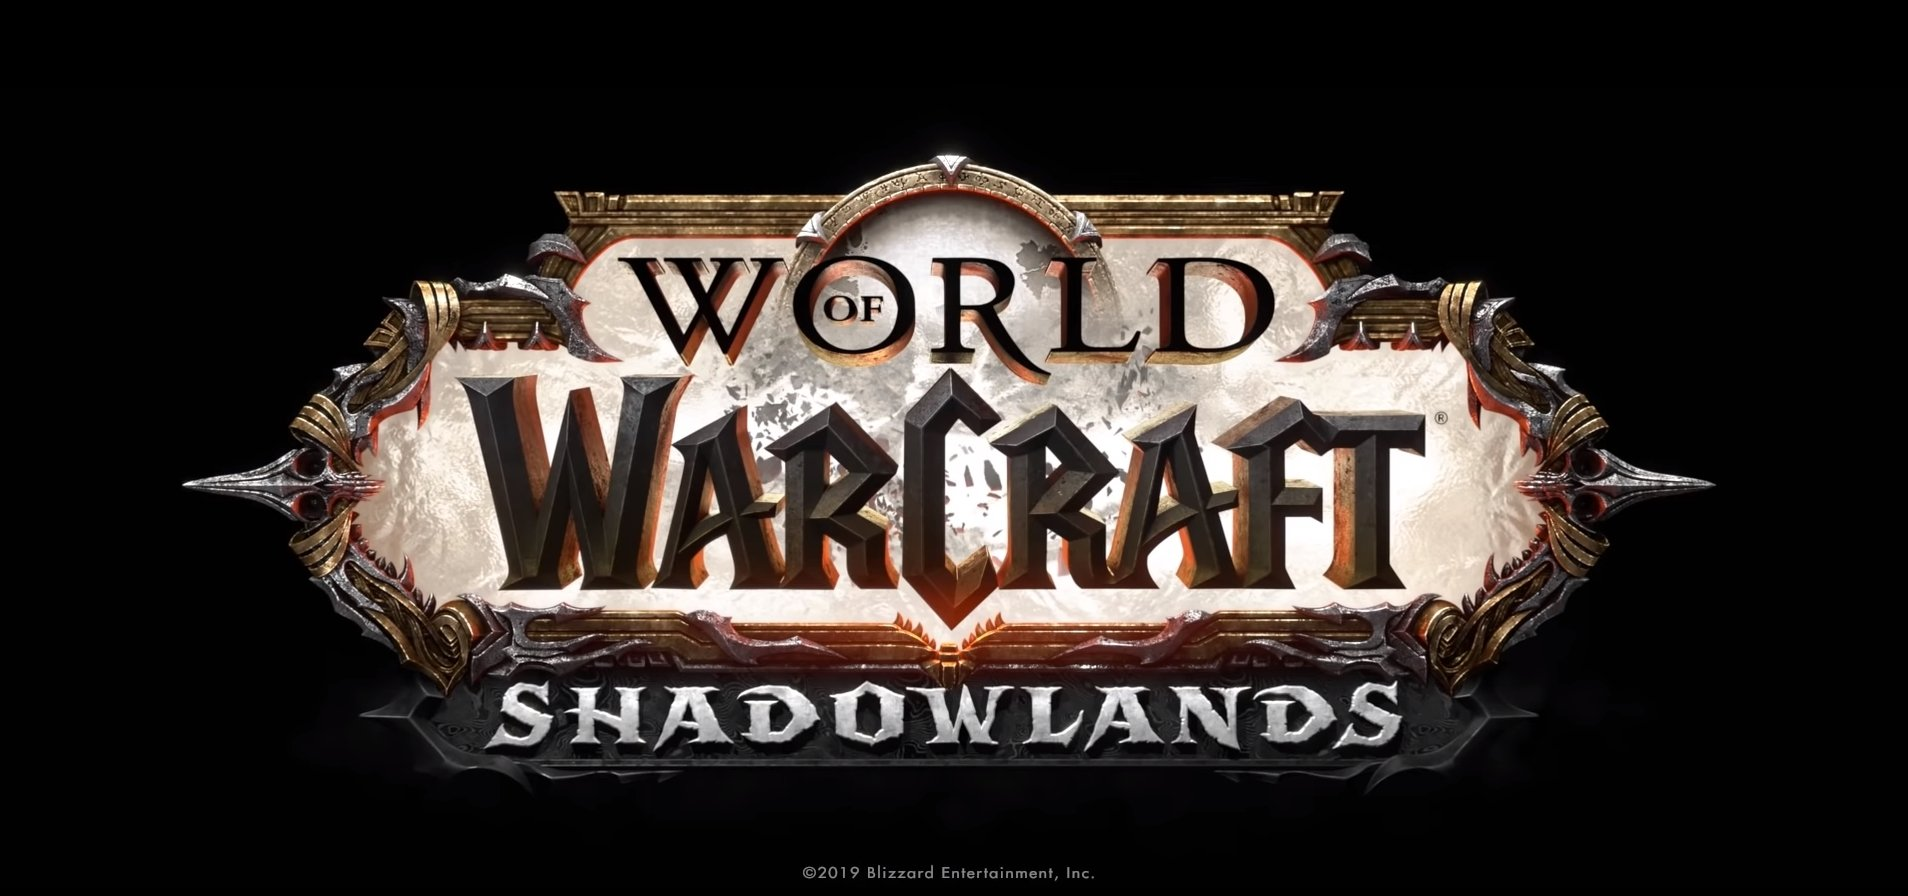 Blizzard Implements And Then Immediately Removes An Unpopular Change To World Of Warcraft: Shadowlands Beta